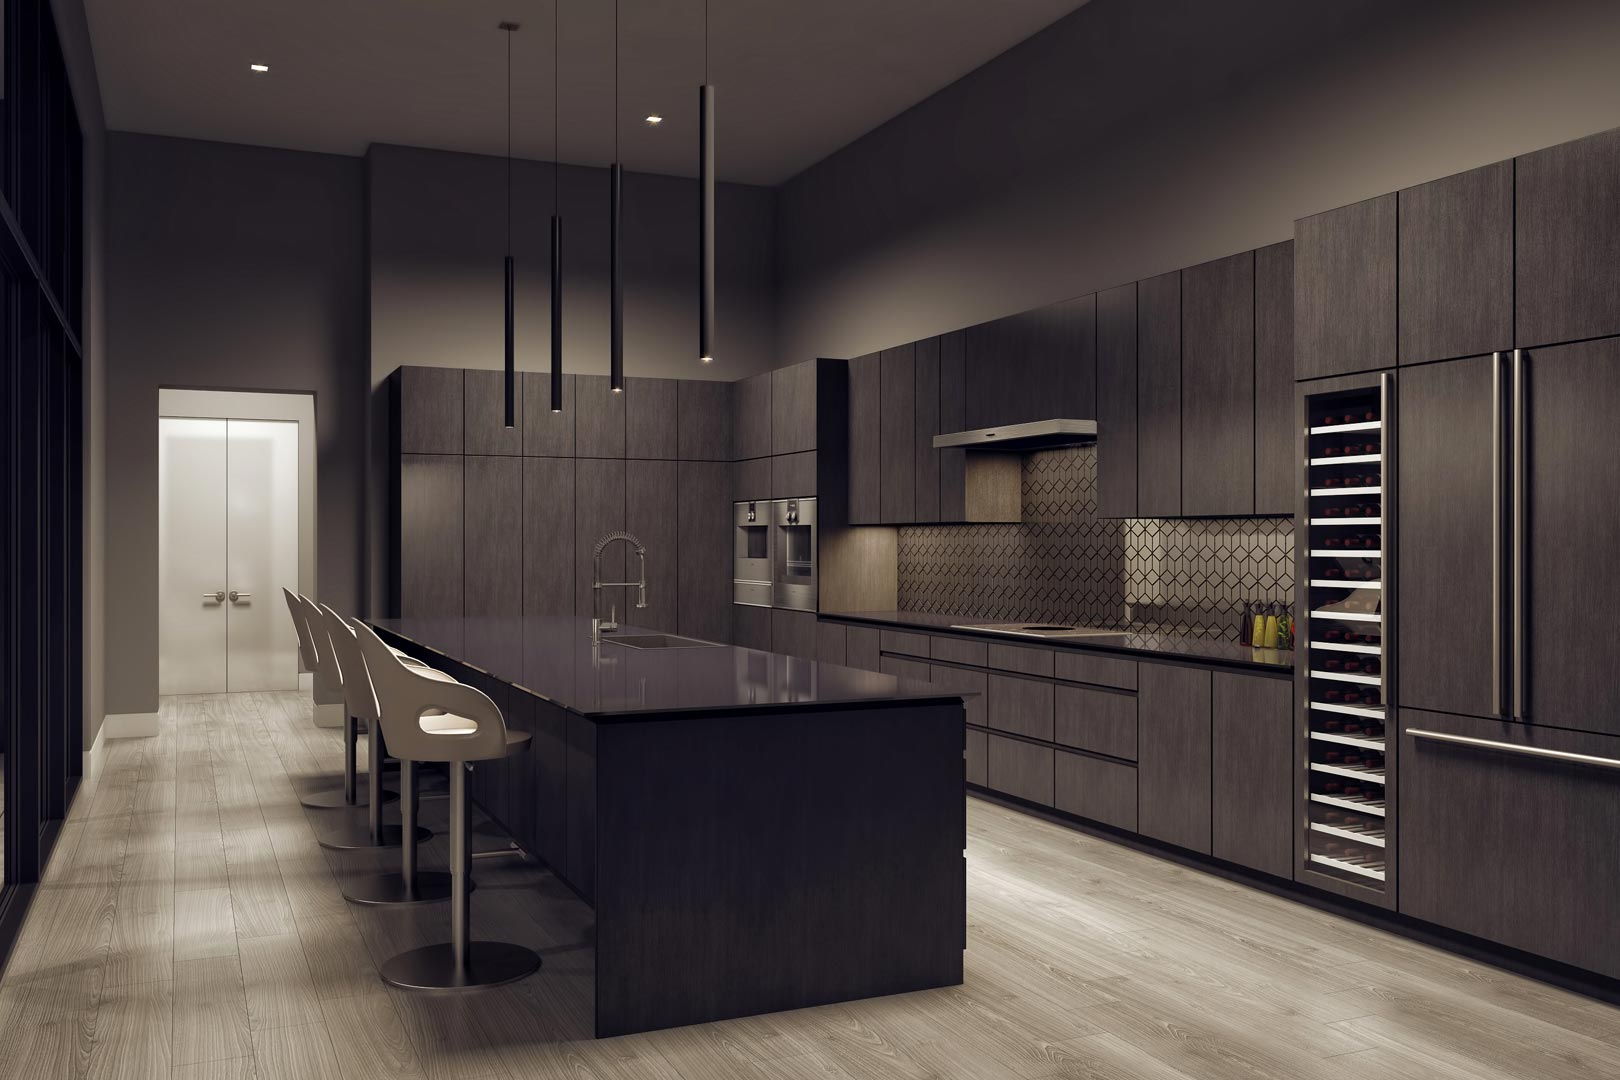 Kitchen Construction Begins Soon : Building houston giorgetti construction to begin soon